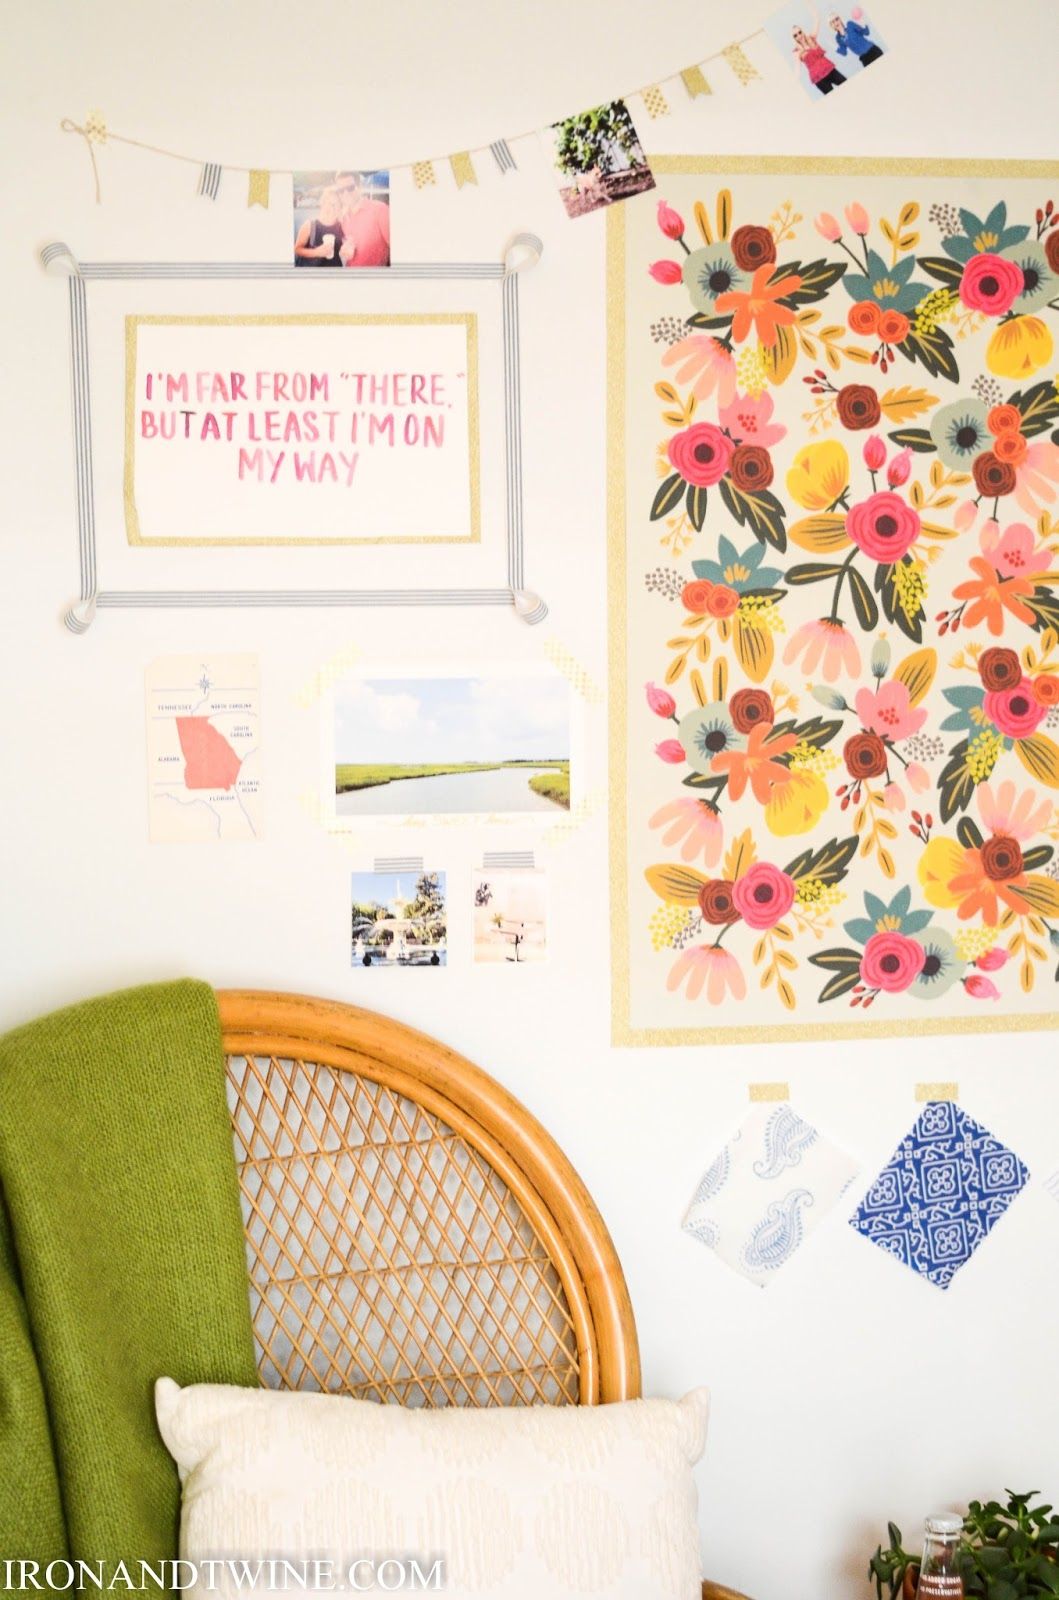 Dorm Room Wall Decor: IRON & TWINE: Washi Tape Gallery Wall